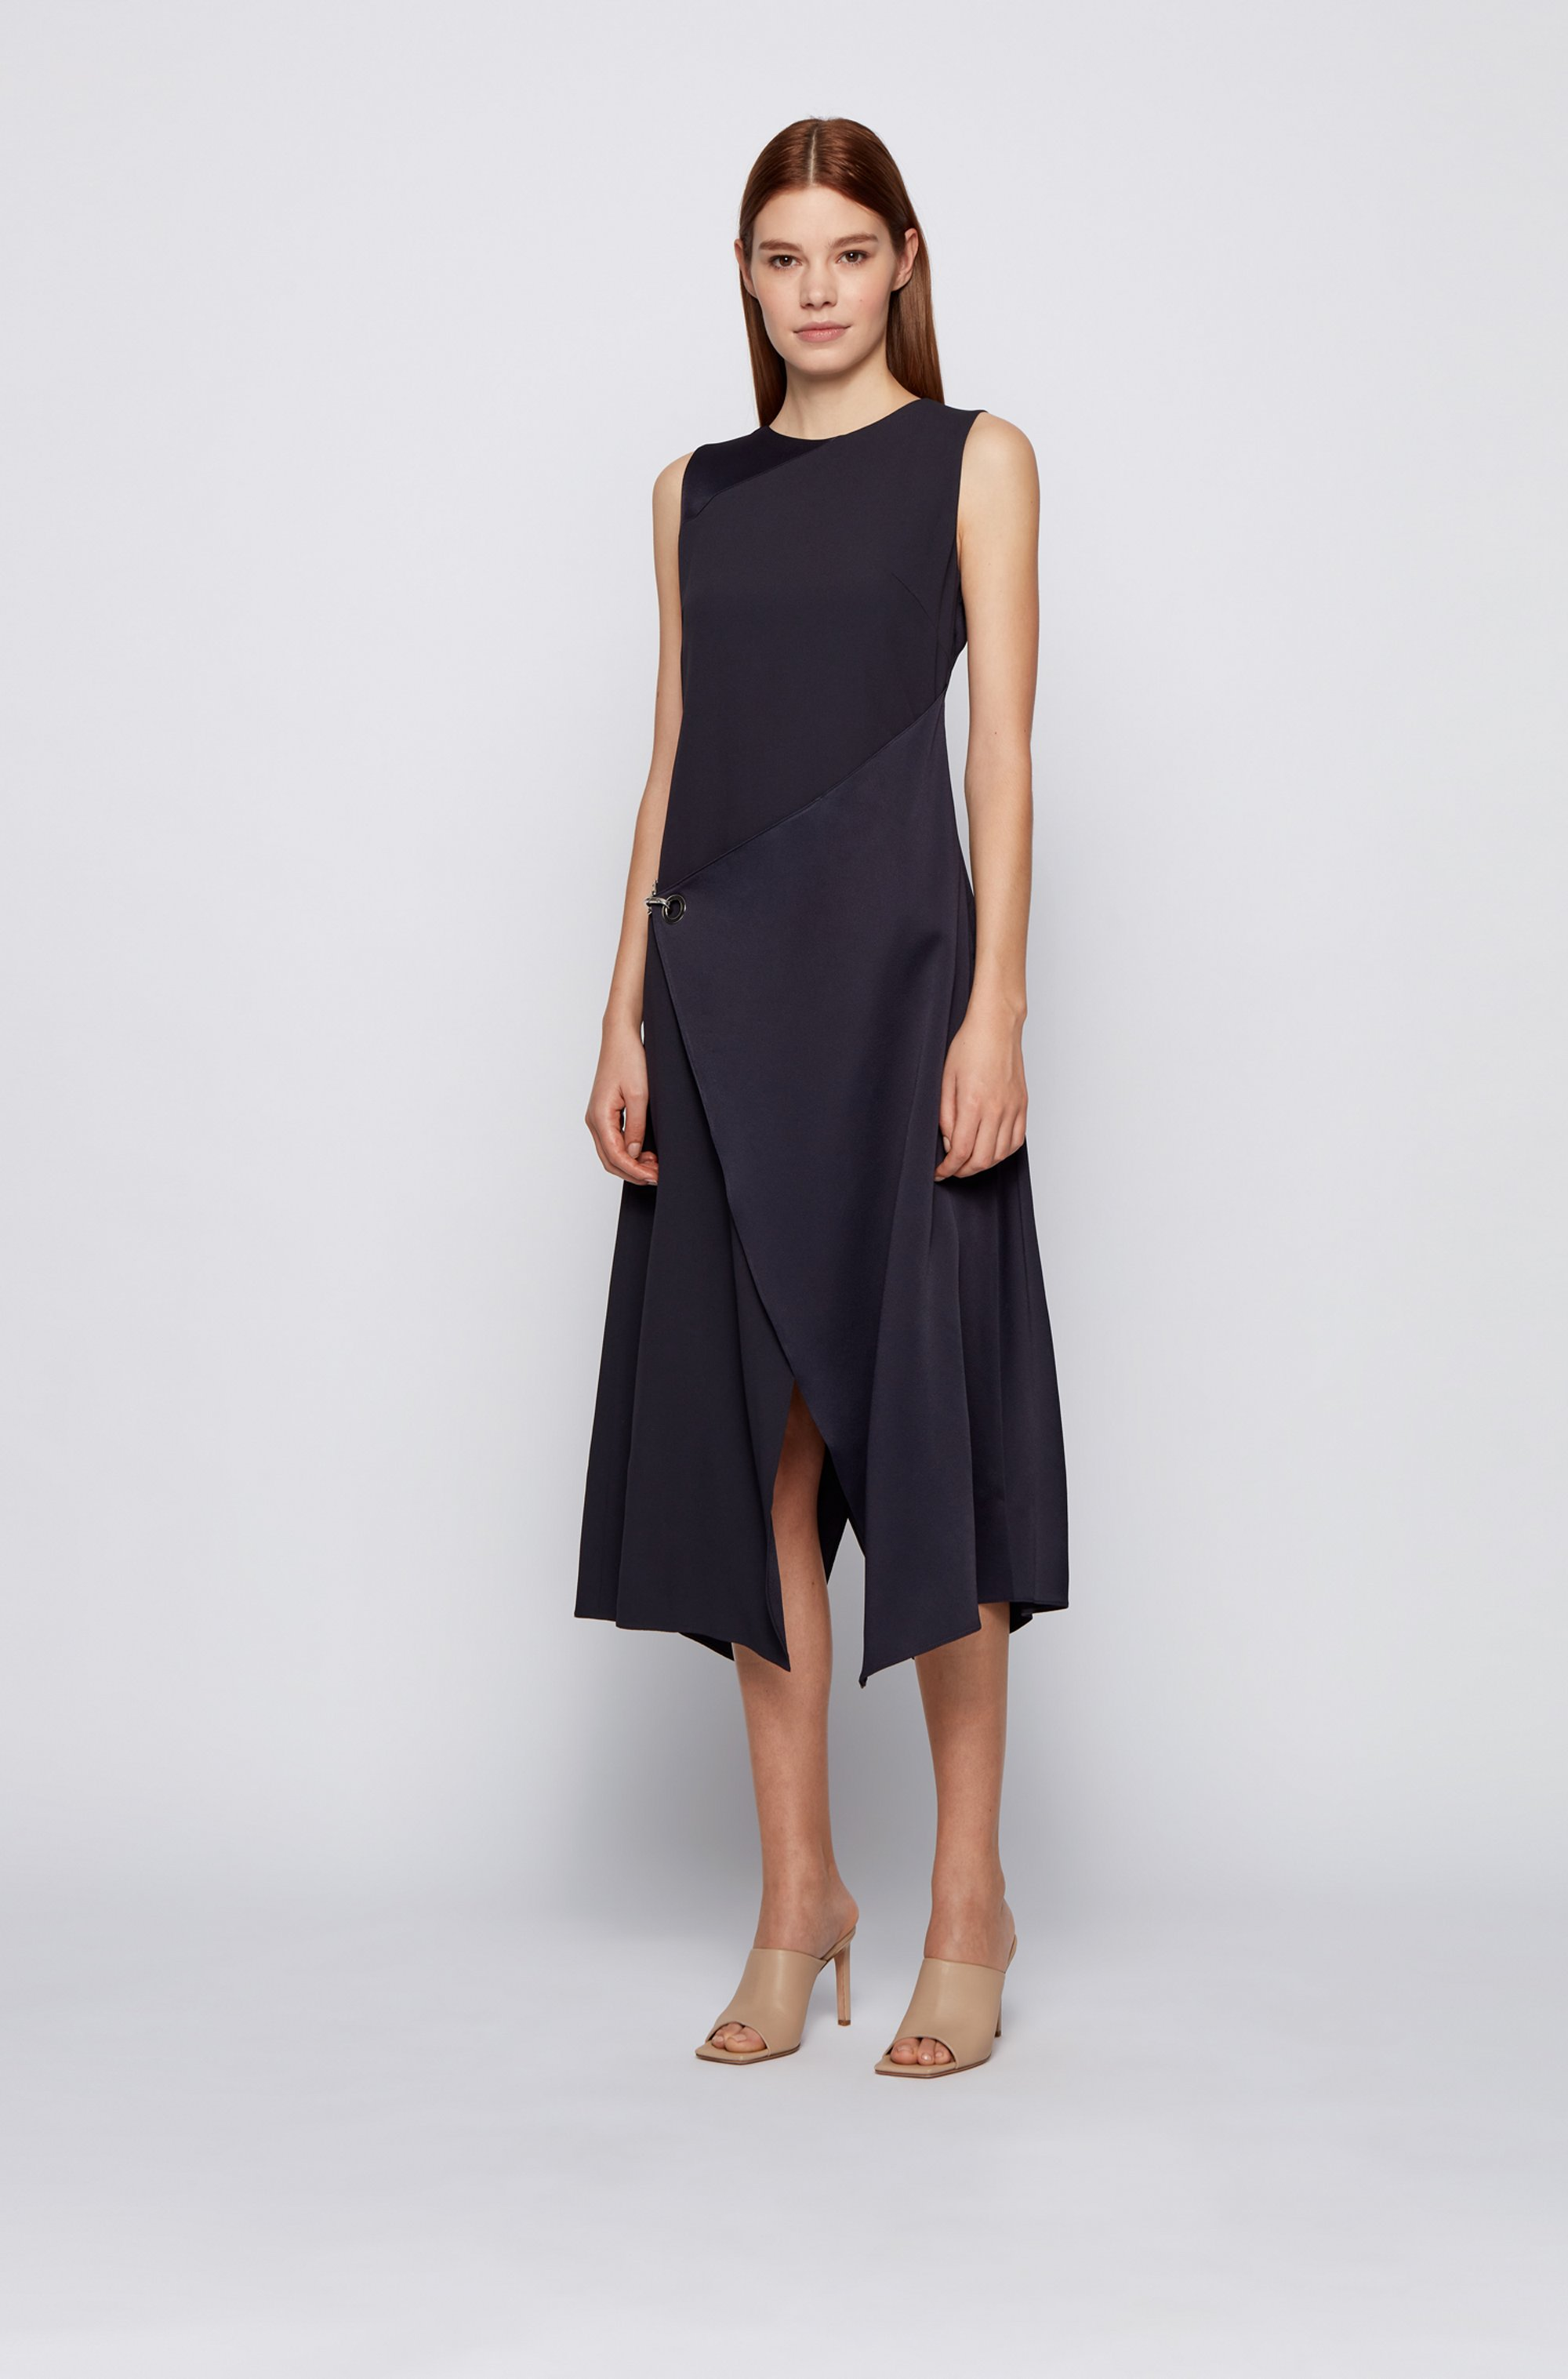 Sleeveless shift dress with asymmetric skirt and hardware trim